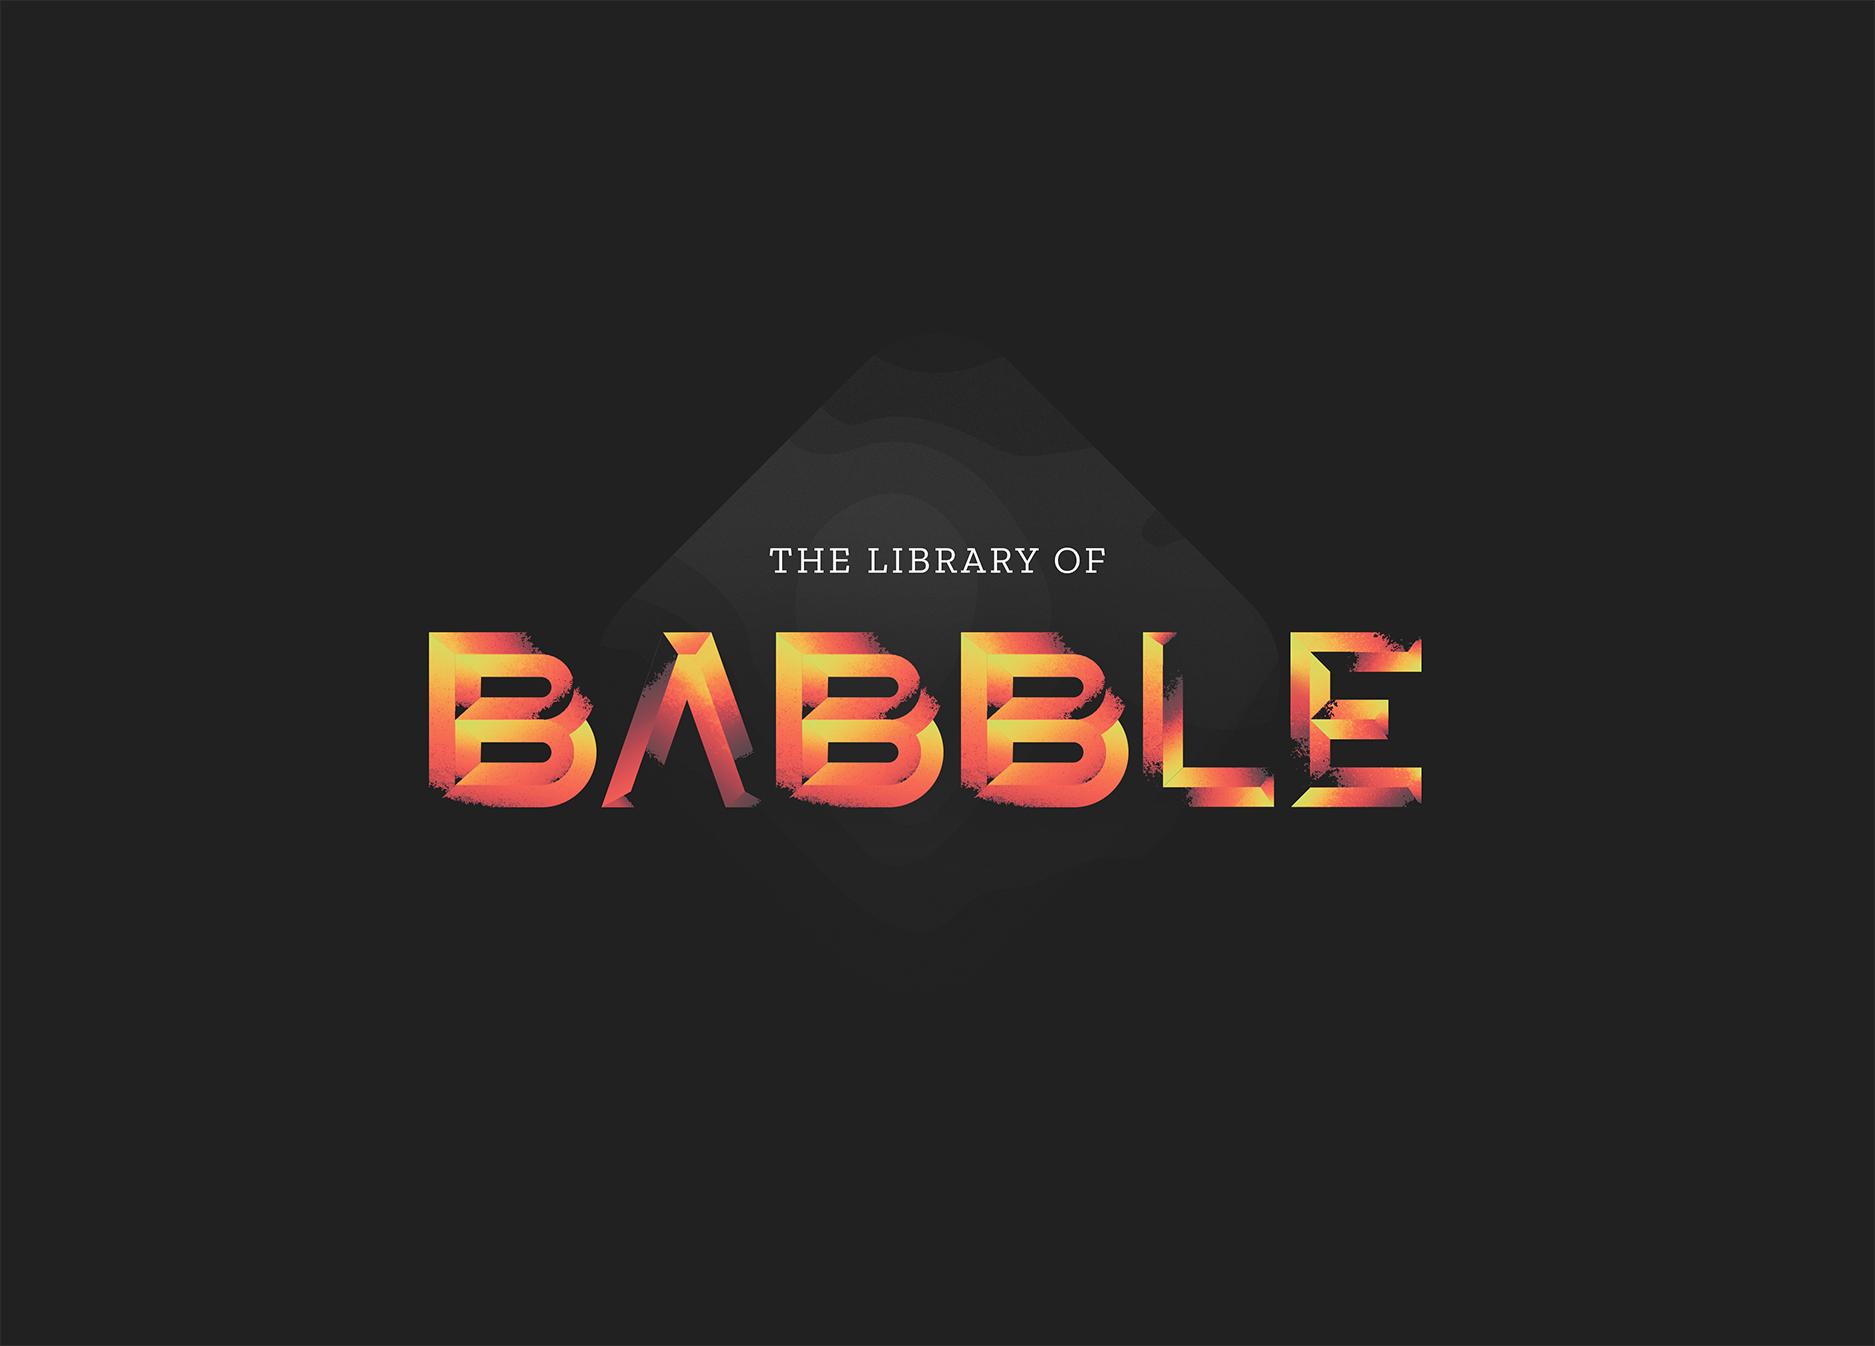 Library of Babble by Demi